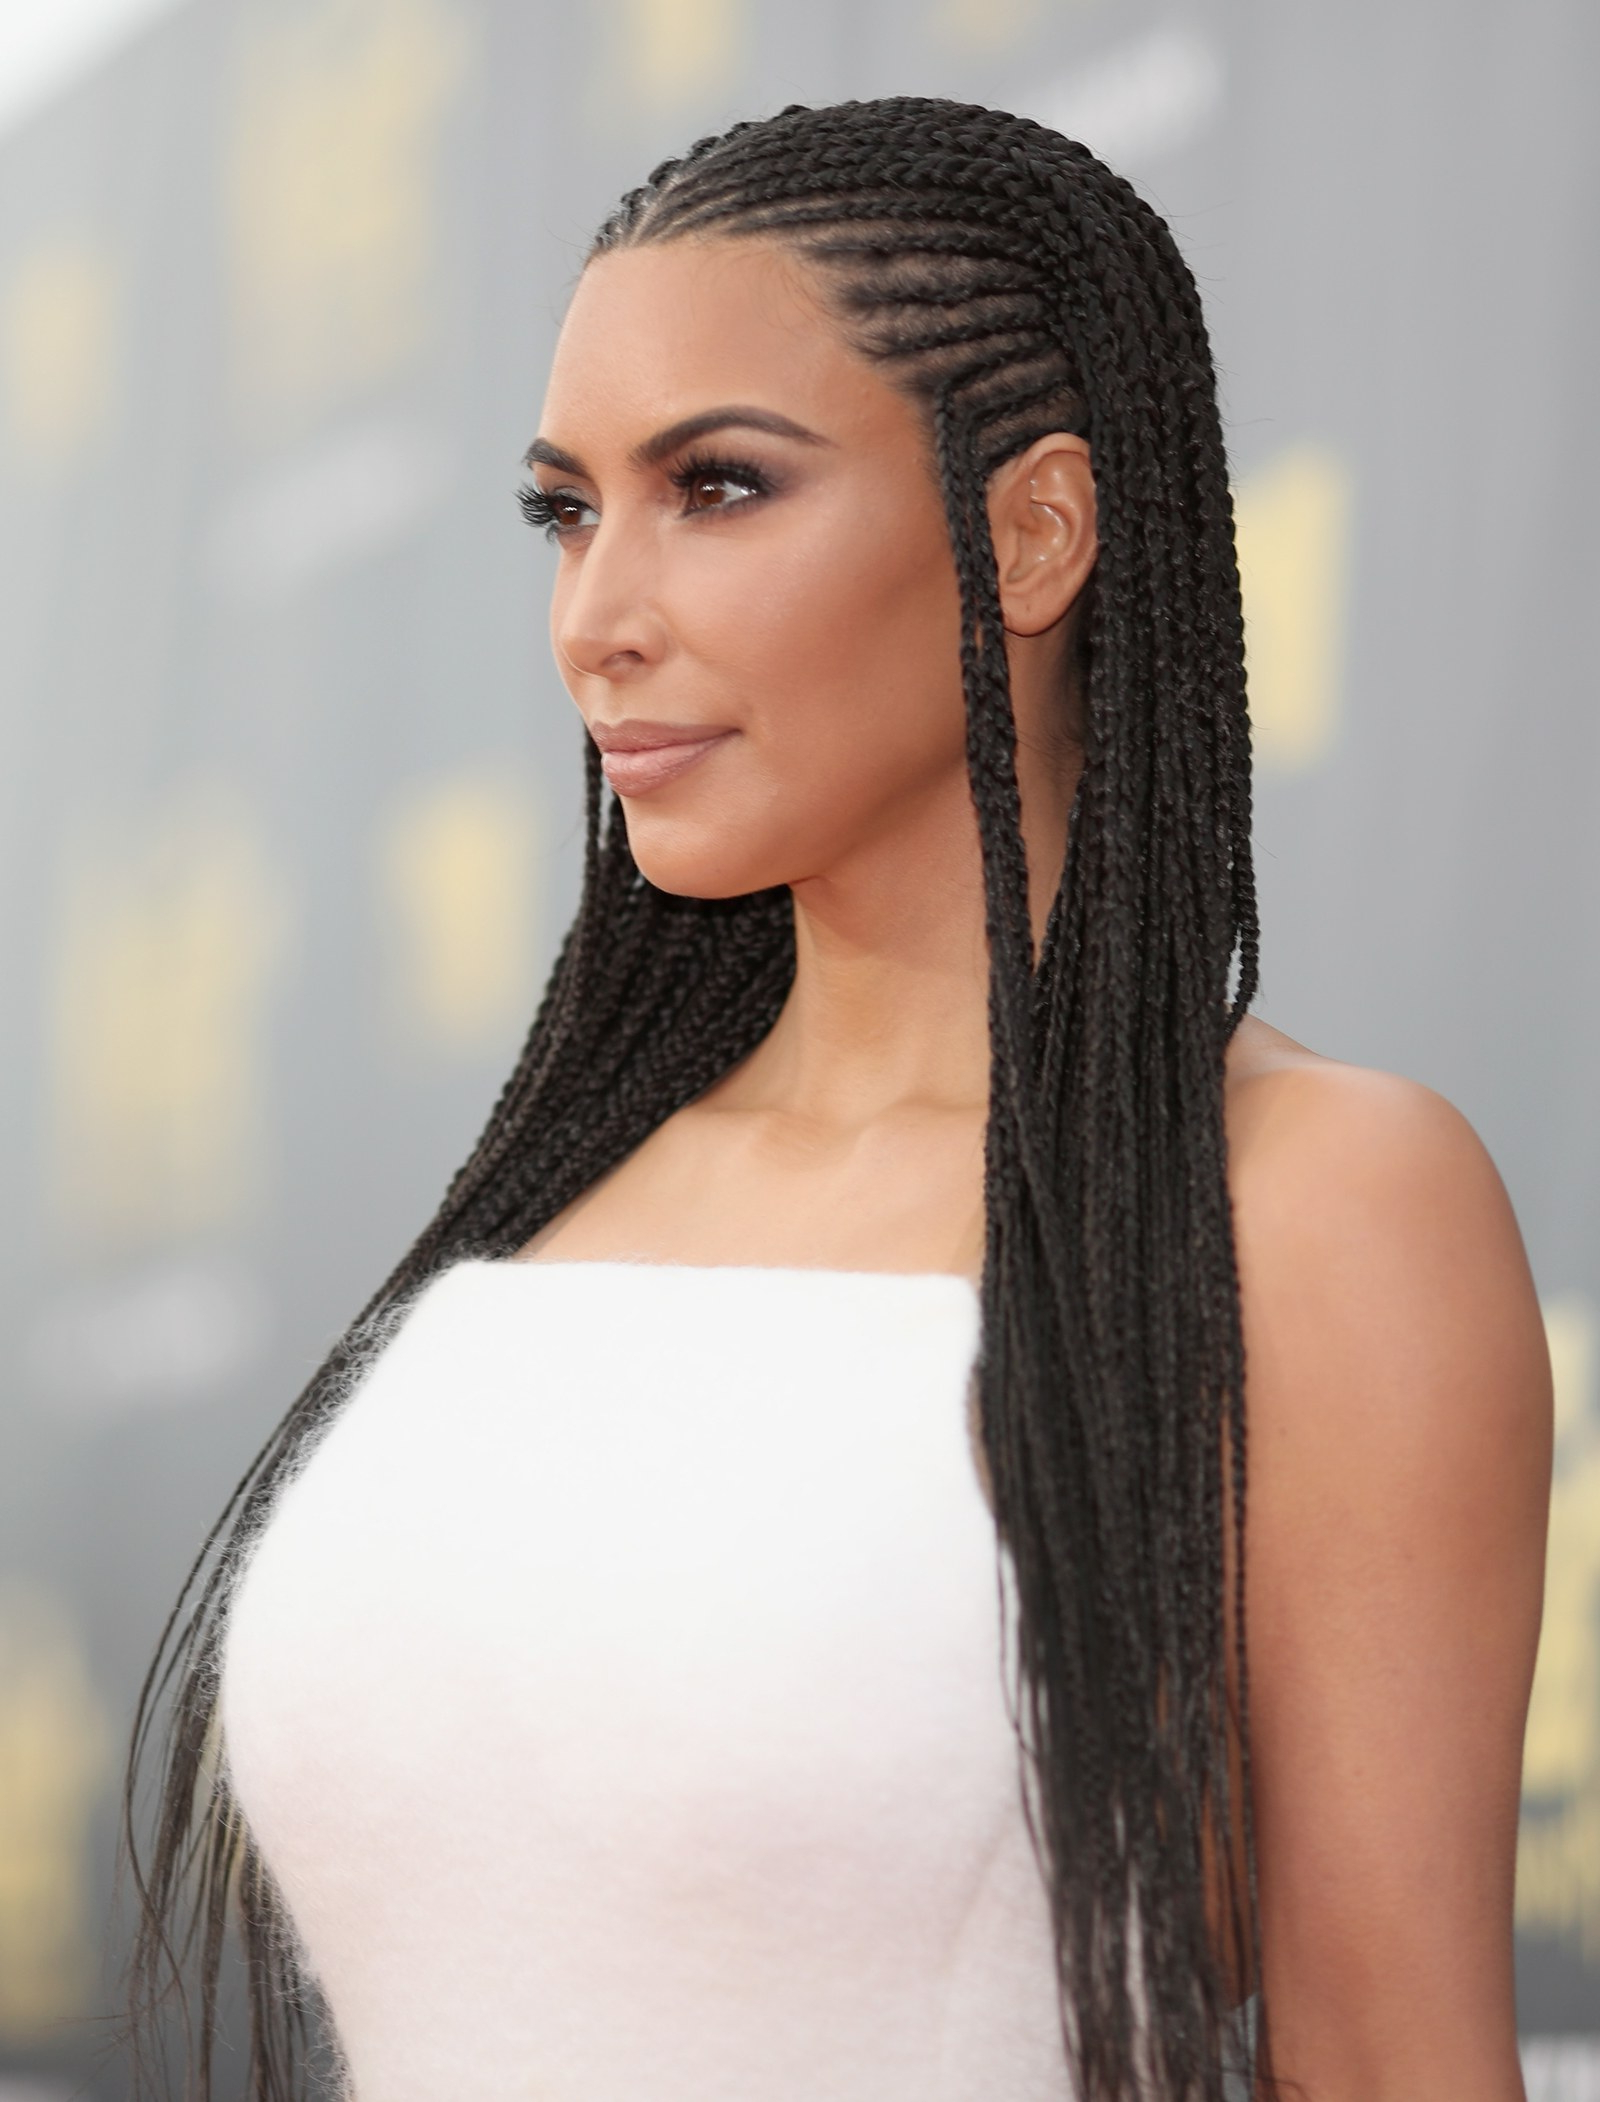 Kim Kardashian West Responds To The Backlash Over Her Braids Intended For Favorite Afro Under Braid Hairstyles (View 16 of 20)